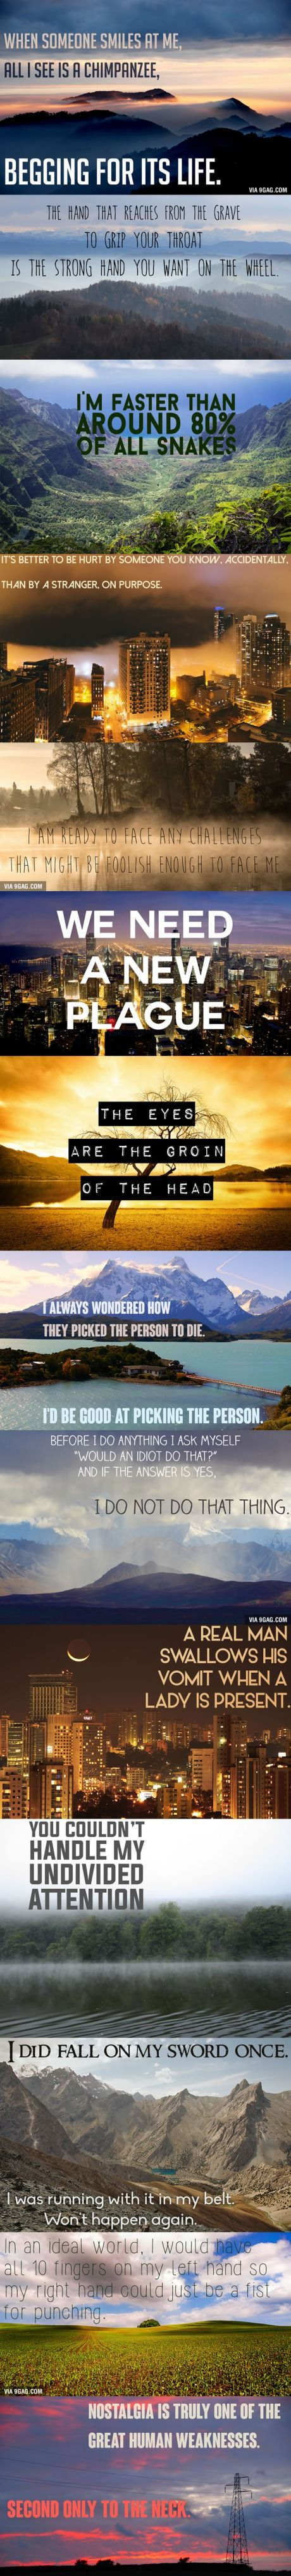 If Dwight Schrute Quotes Were Motivational Poster